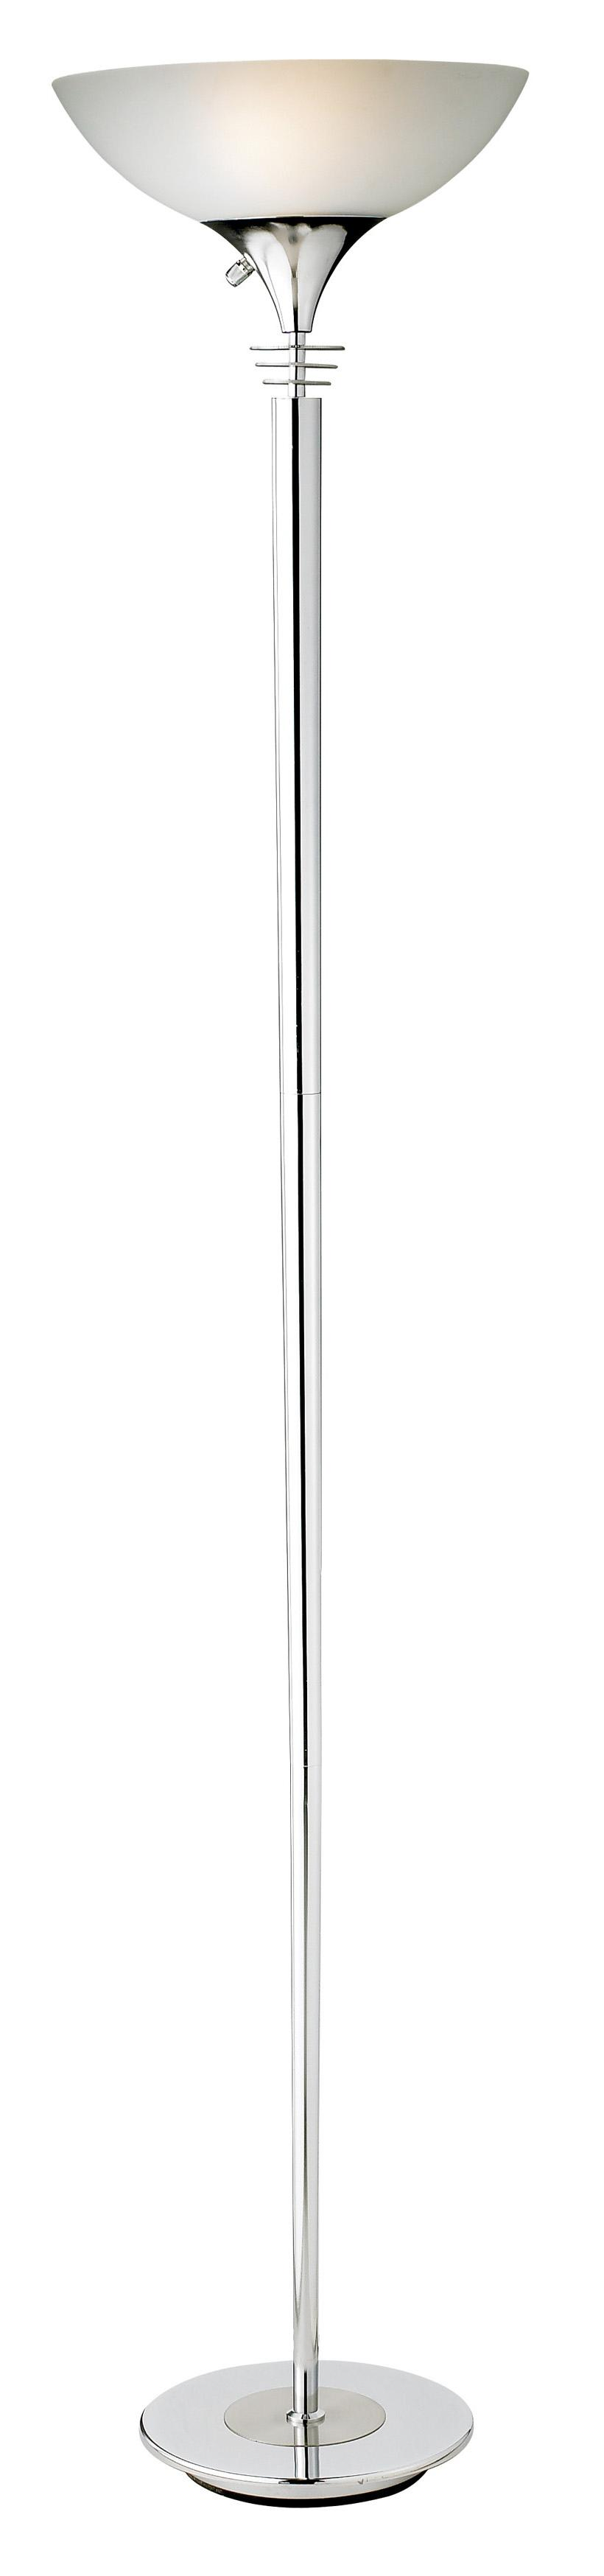 Metropolis Chrome Torchiere Floor Lamp M1267 Lamps